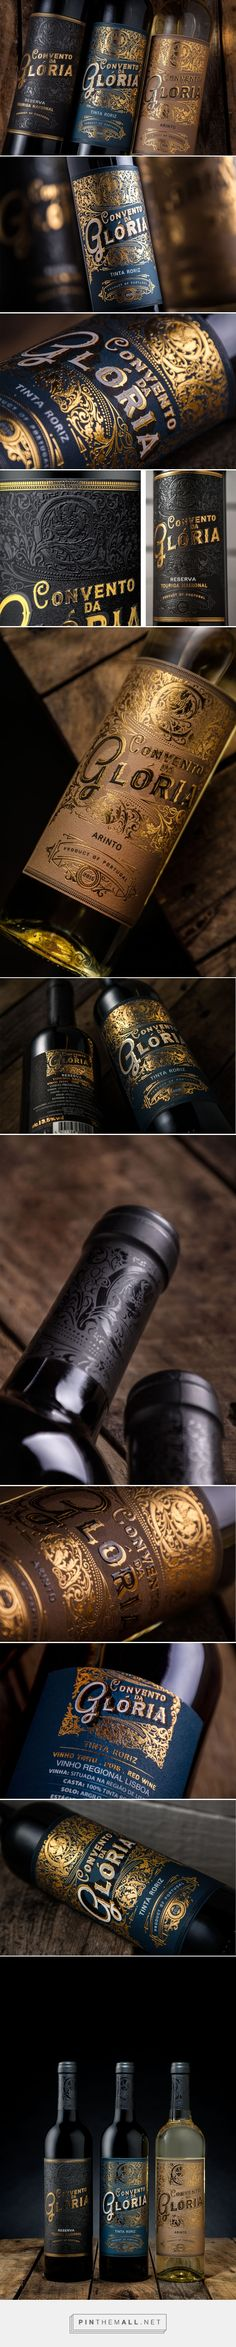 Convento da Glória wine label design by M&A Creative Agency (Portugal) - http://www.packagingoftheworld.com/2016/07/convento-da-gloria.html